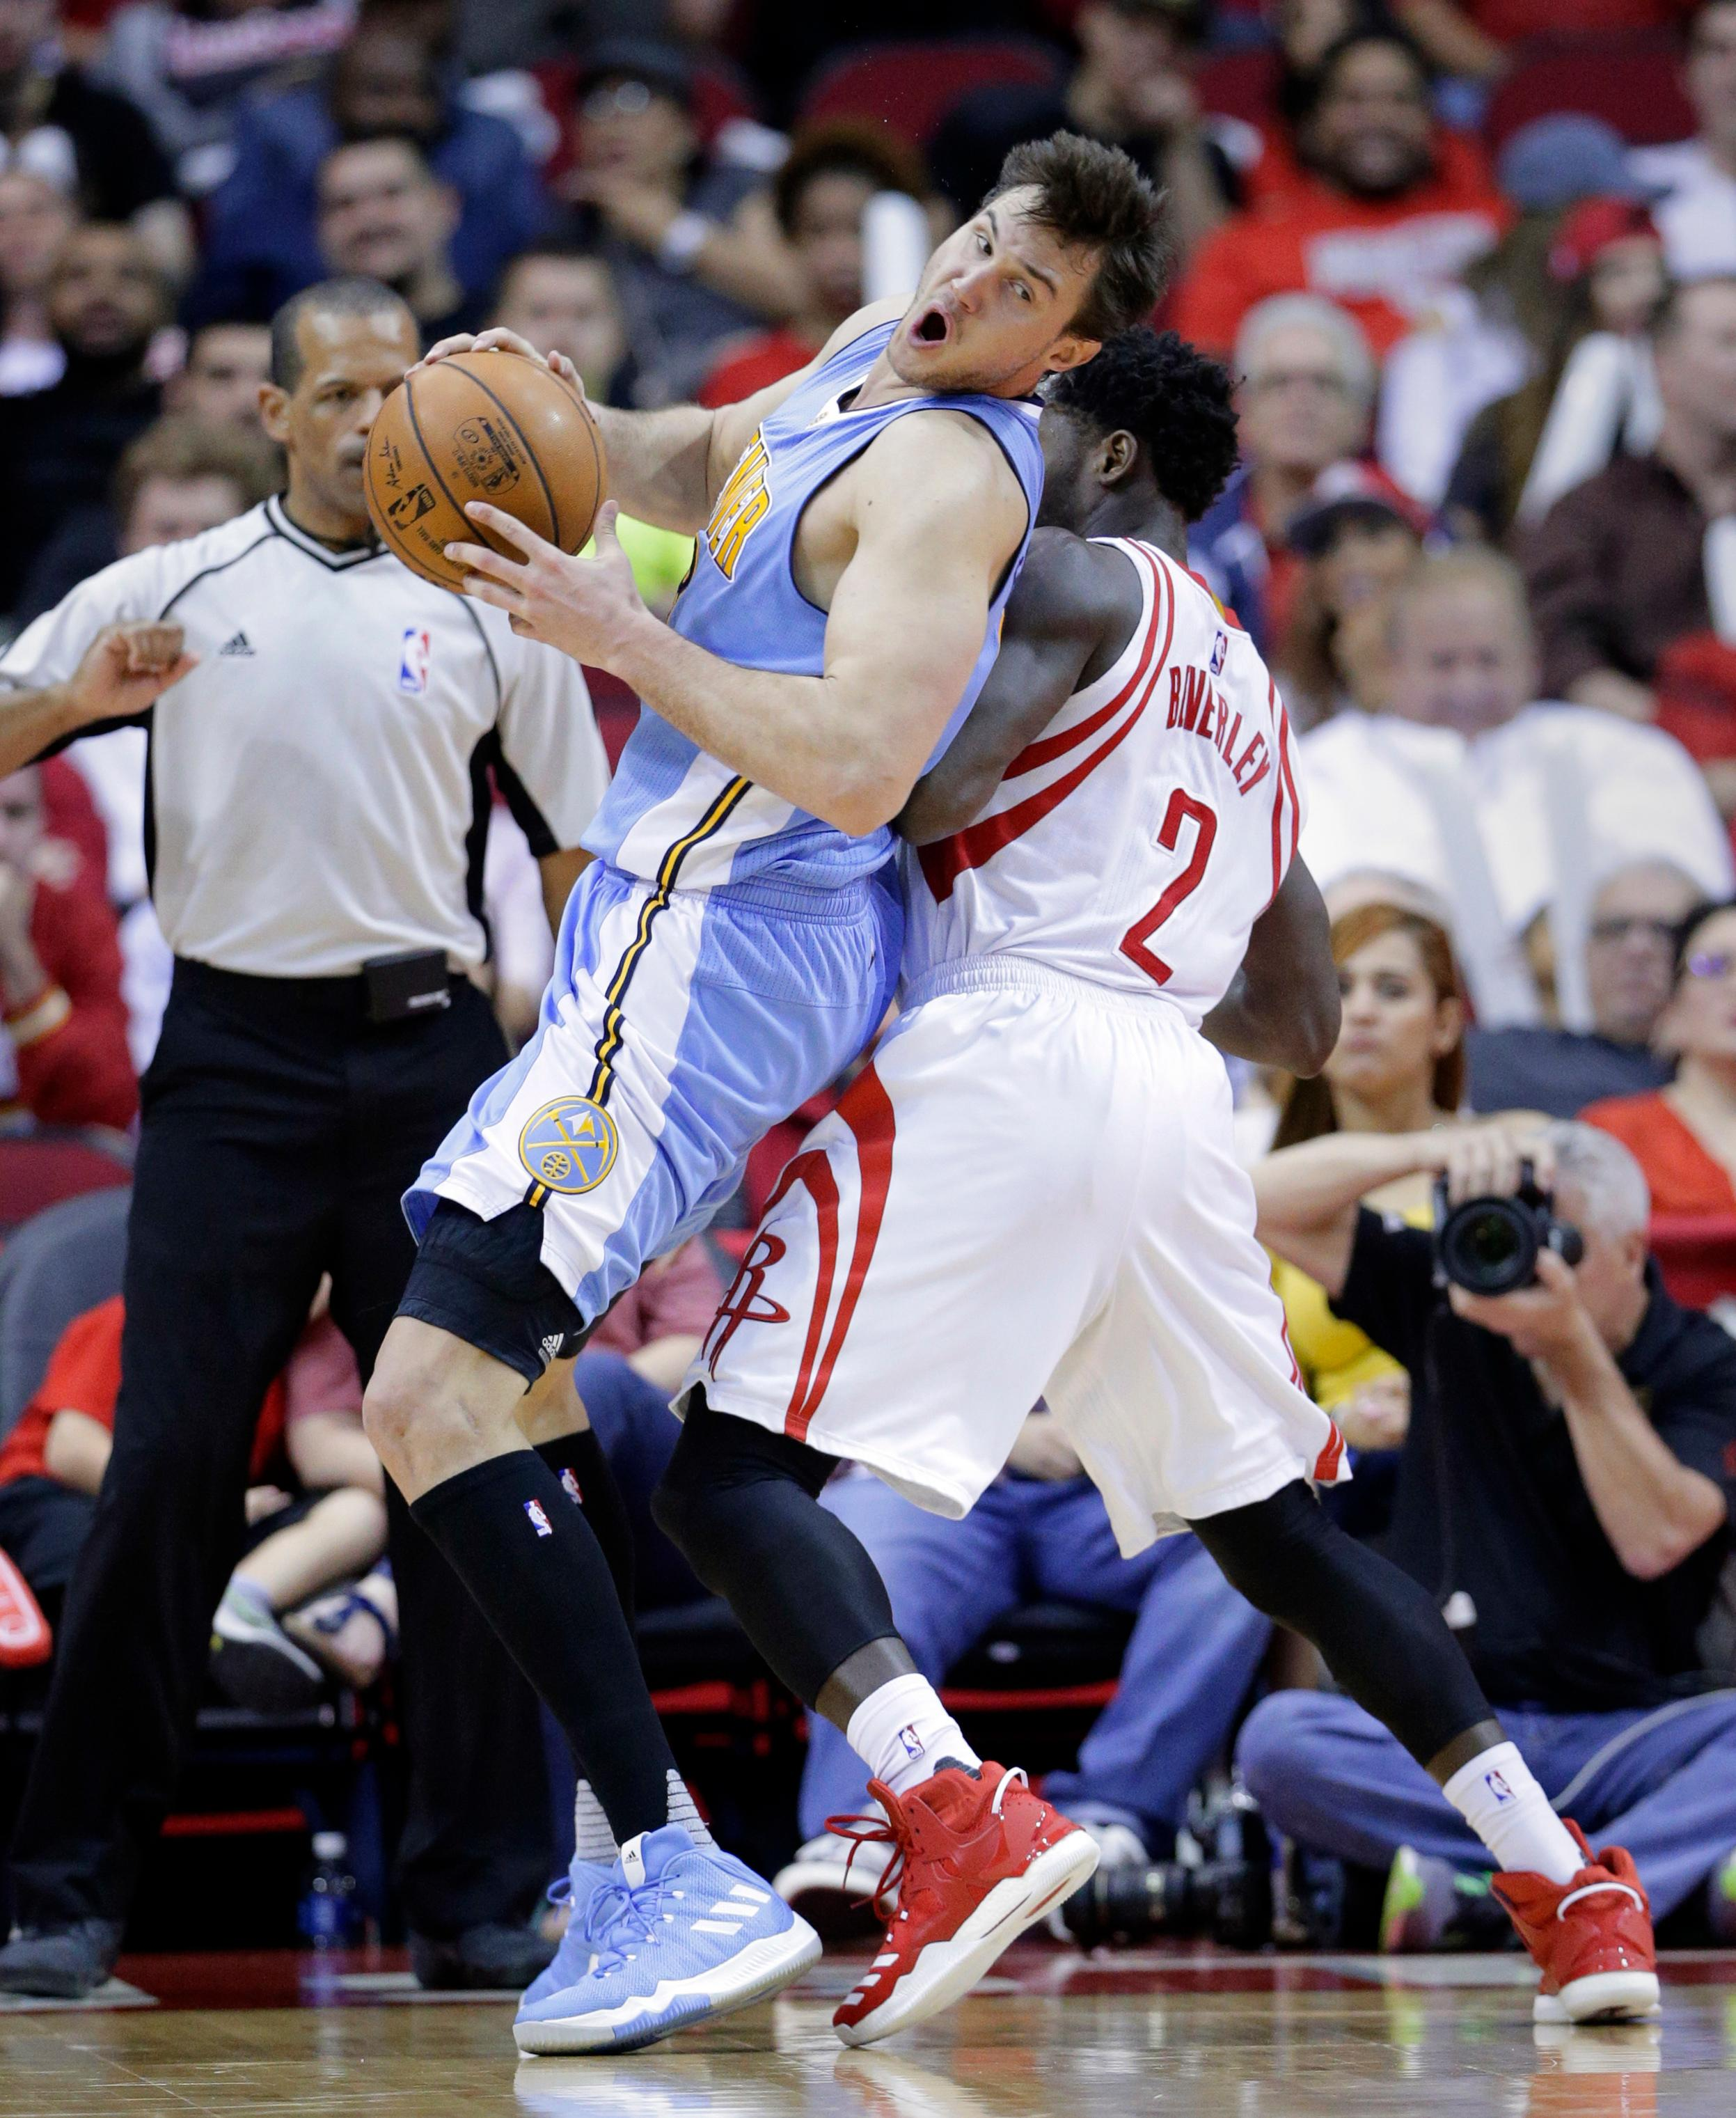 Denver Nuggets' Danilo Gallinari (8) drives around Houston Rockets' Patrick Beverley (2) in the second half of an NBA basketball game, Wednesday, April 5, 2017, in Houston. (AP Photo/Michael Wyke)